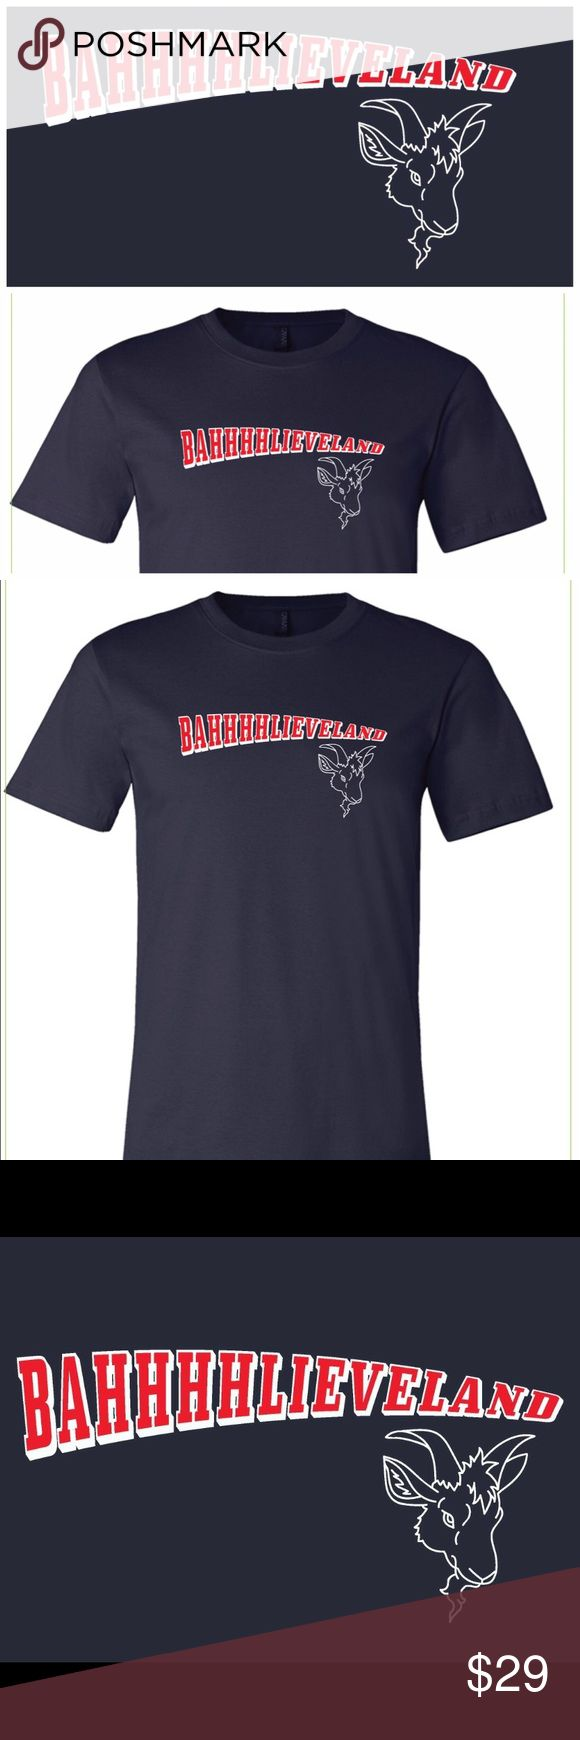 Unisex Bahhhhlieveland Cleveland Indians Bella T The Curse of the Billy Goat stays... because we're BAHHHHLIEVELAND. Show your Cleveland Indians World Series pride with this soft, unisex, well-loved feeling tee in 100% cotton. Get ready to Go Tribe! CLE Threads Shirts Tees - Short Sleeve